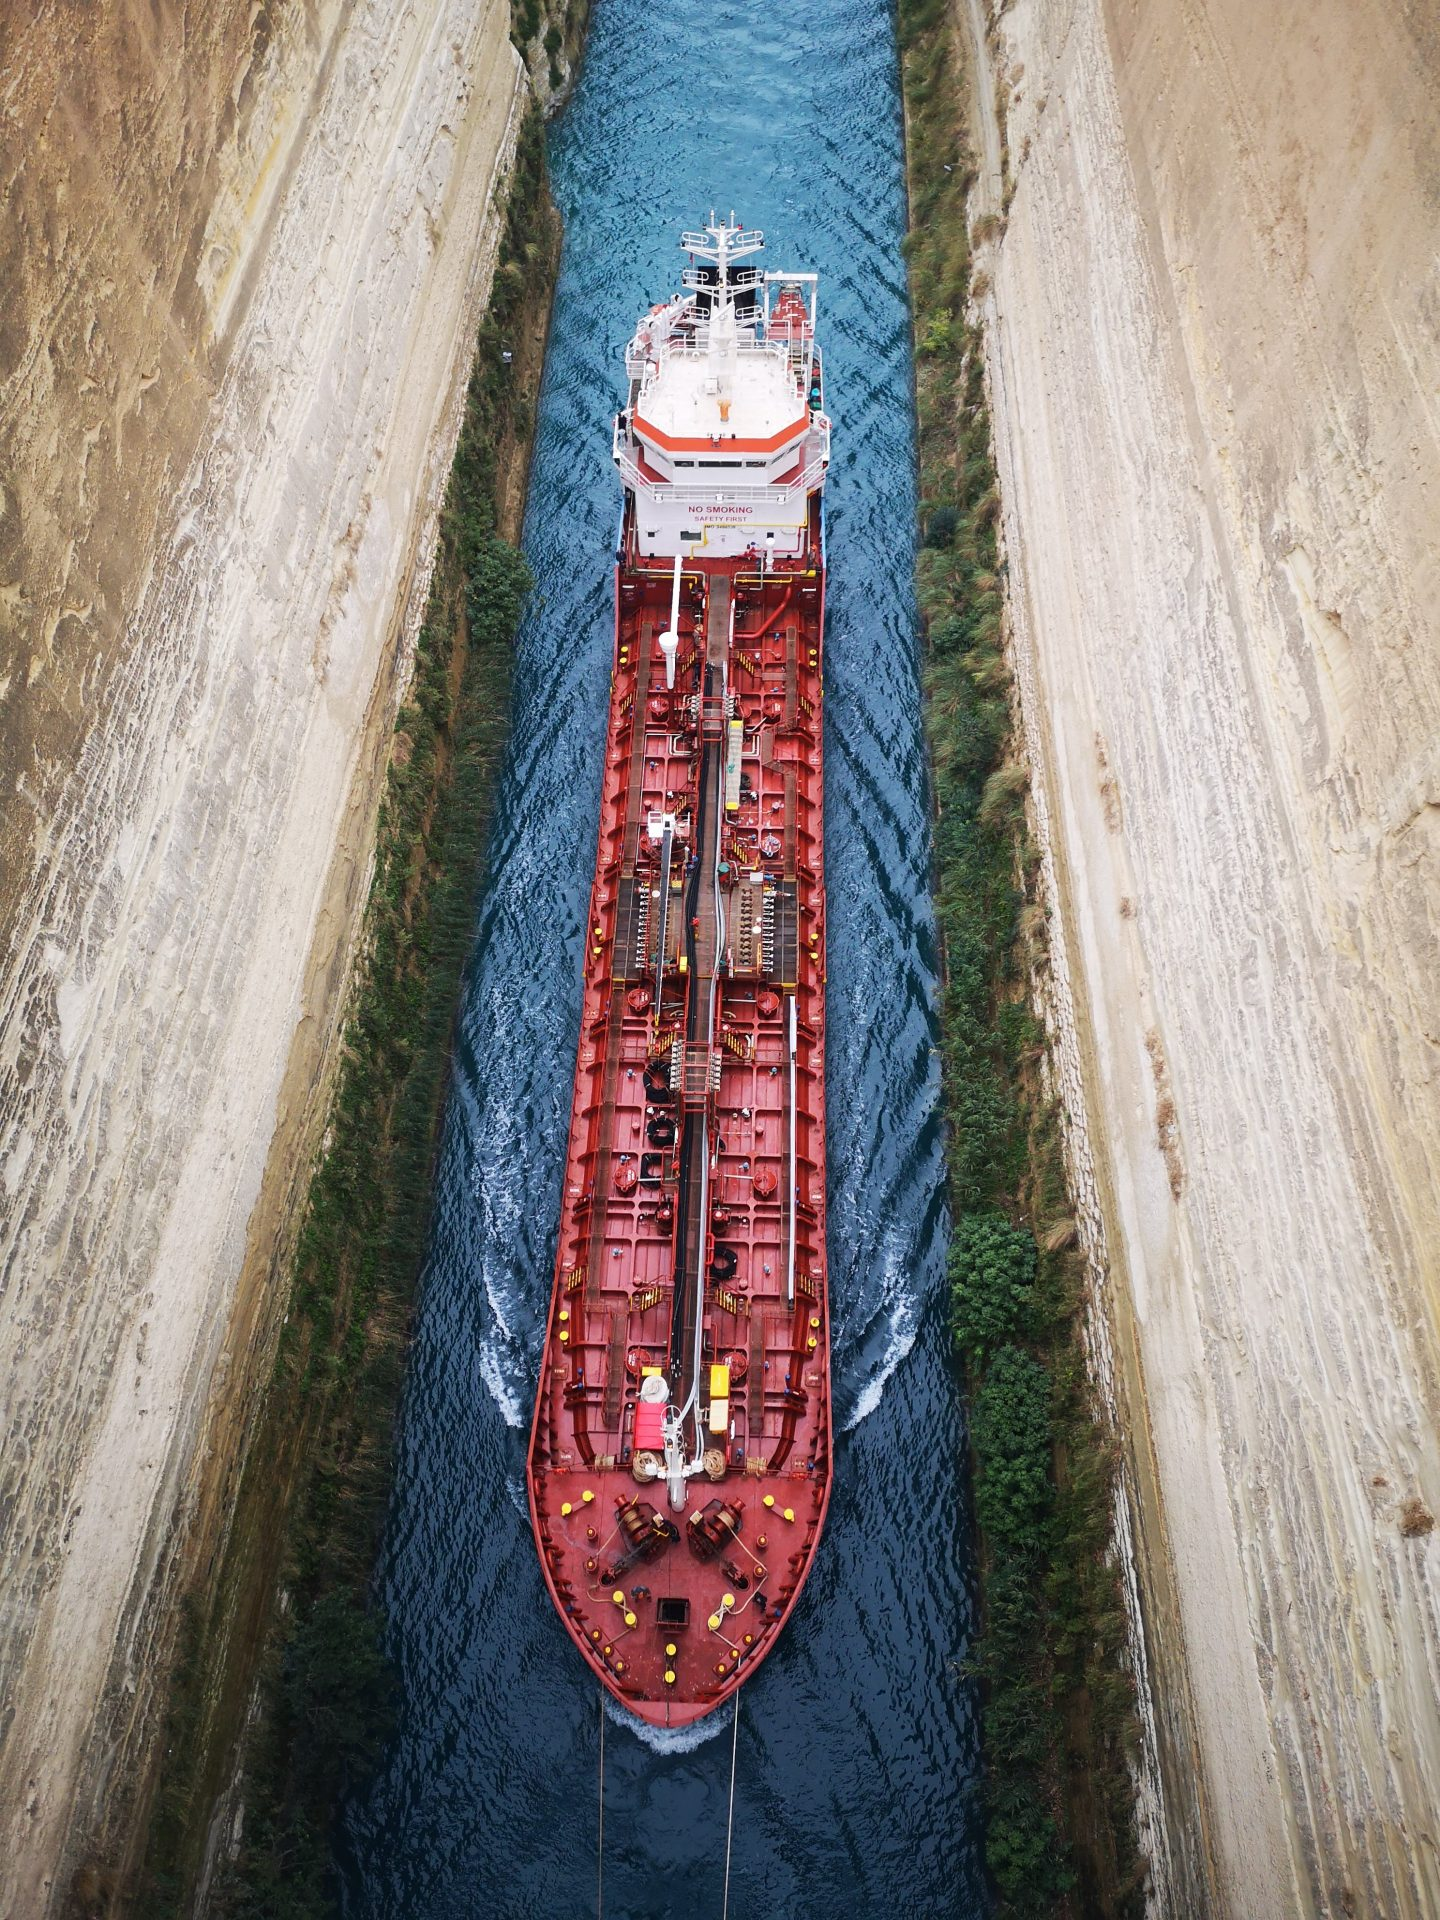 Tanker on the Corinth Canal. The Peloponnese